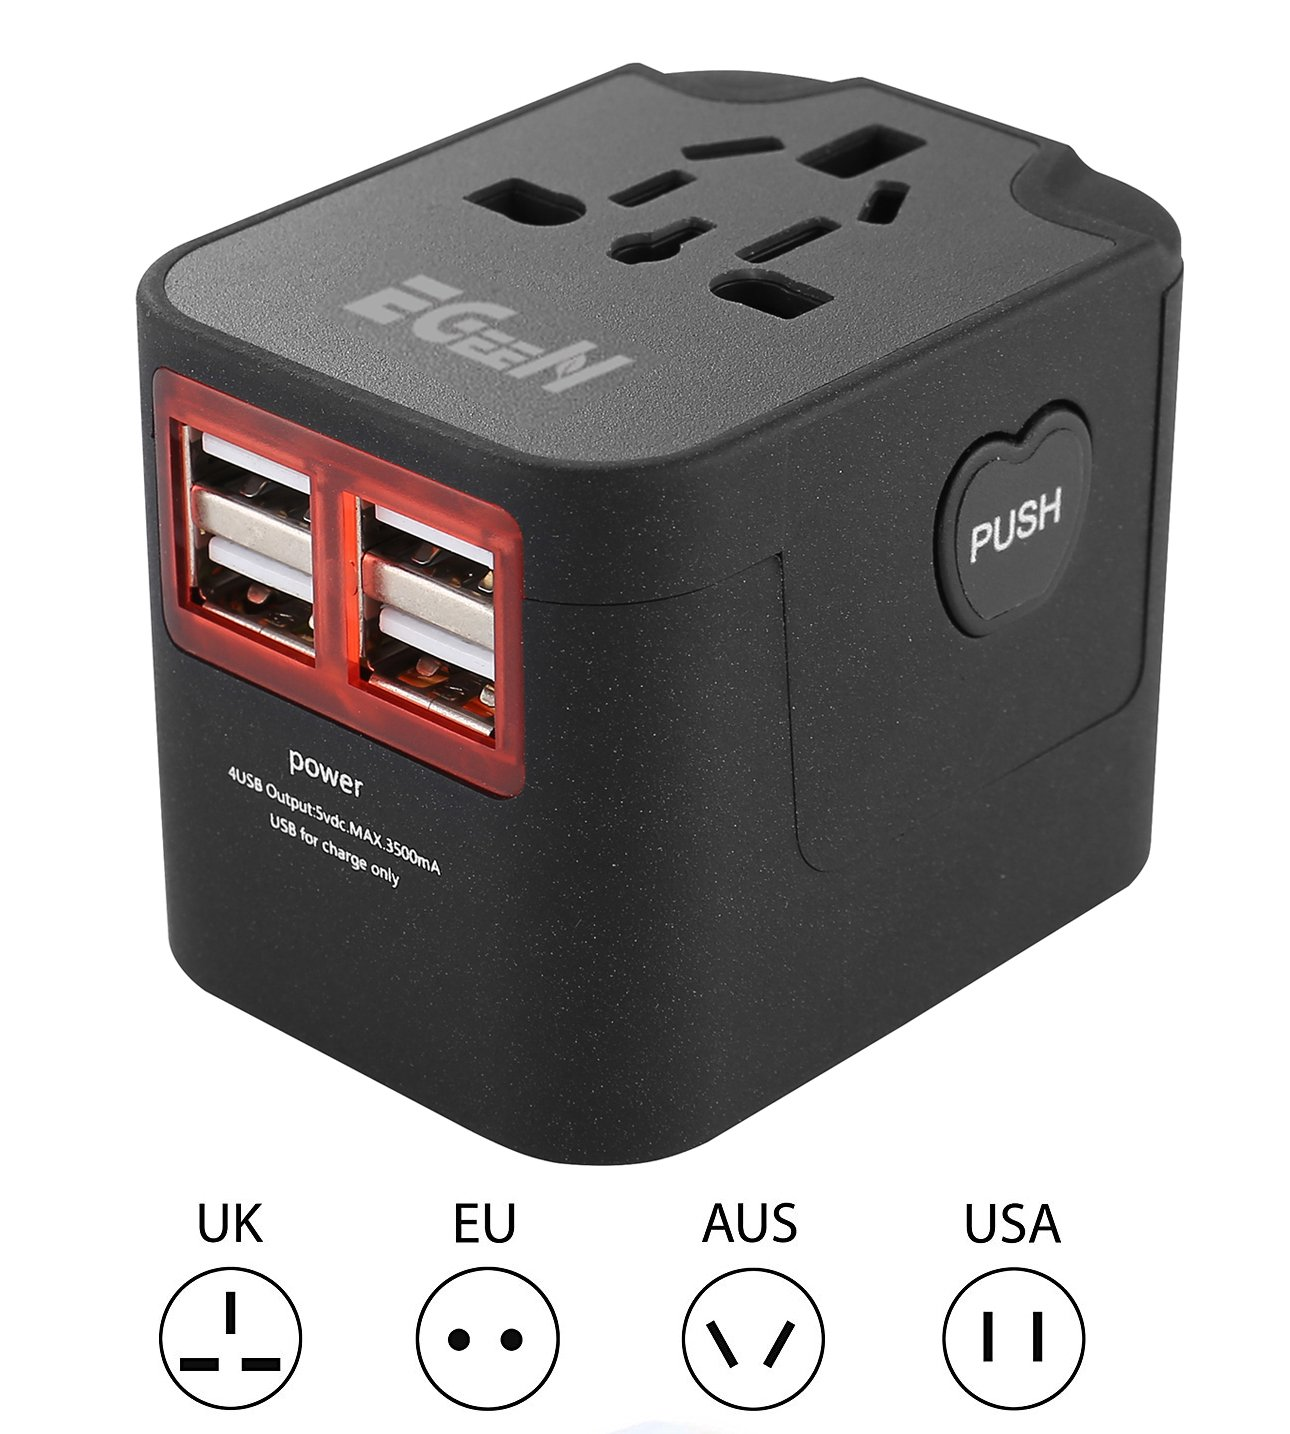 Universal Travel Adapter,Wall Power Converter Plug with 4 USB Charging Ports,AC Power Outlet Electric Wall Charger for Europe USA UK Australia (black),Built-in Fuse by Egeen